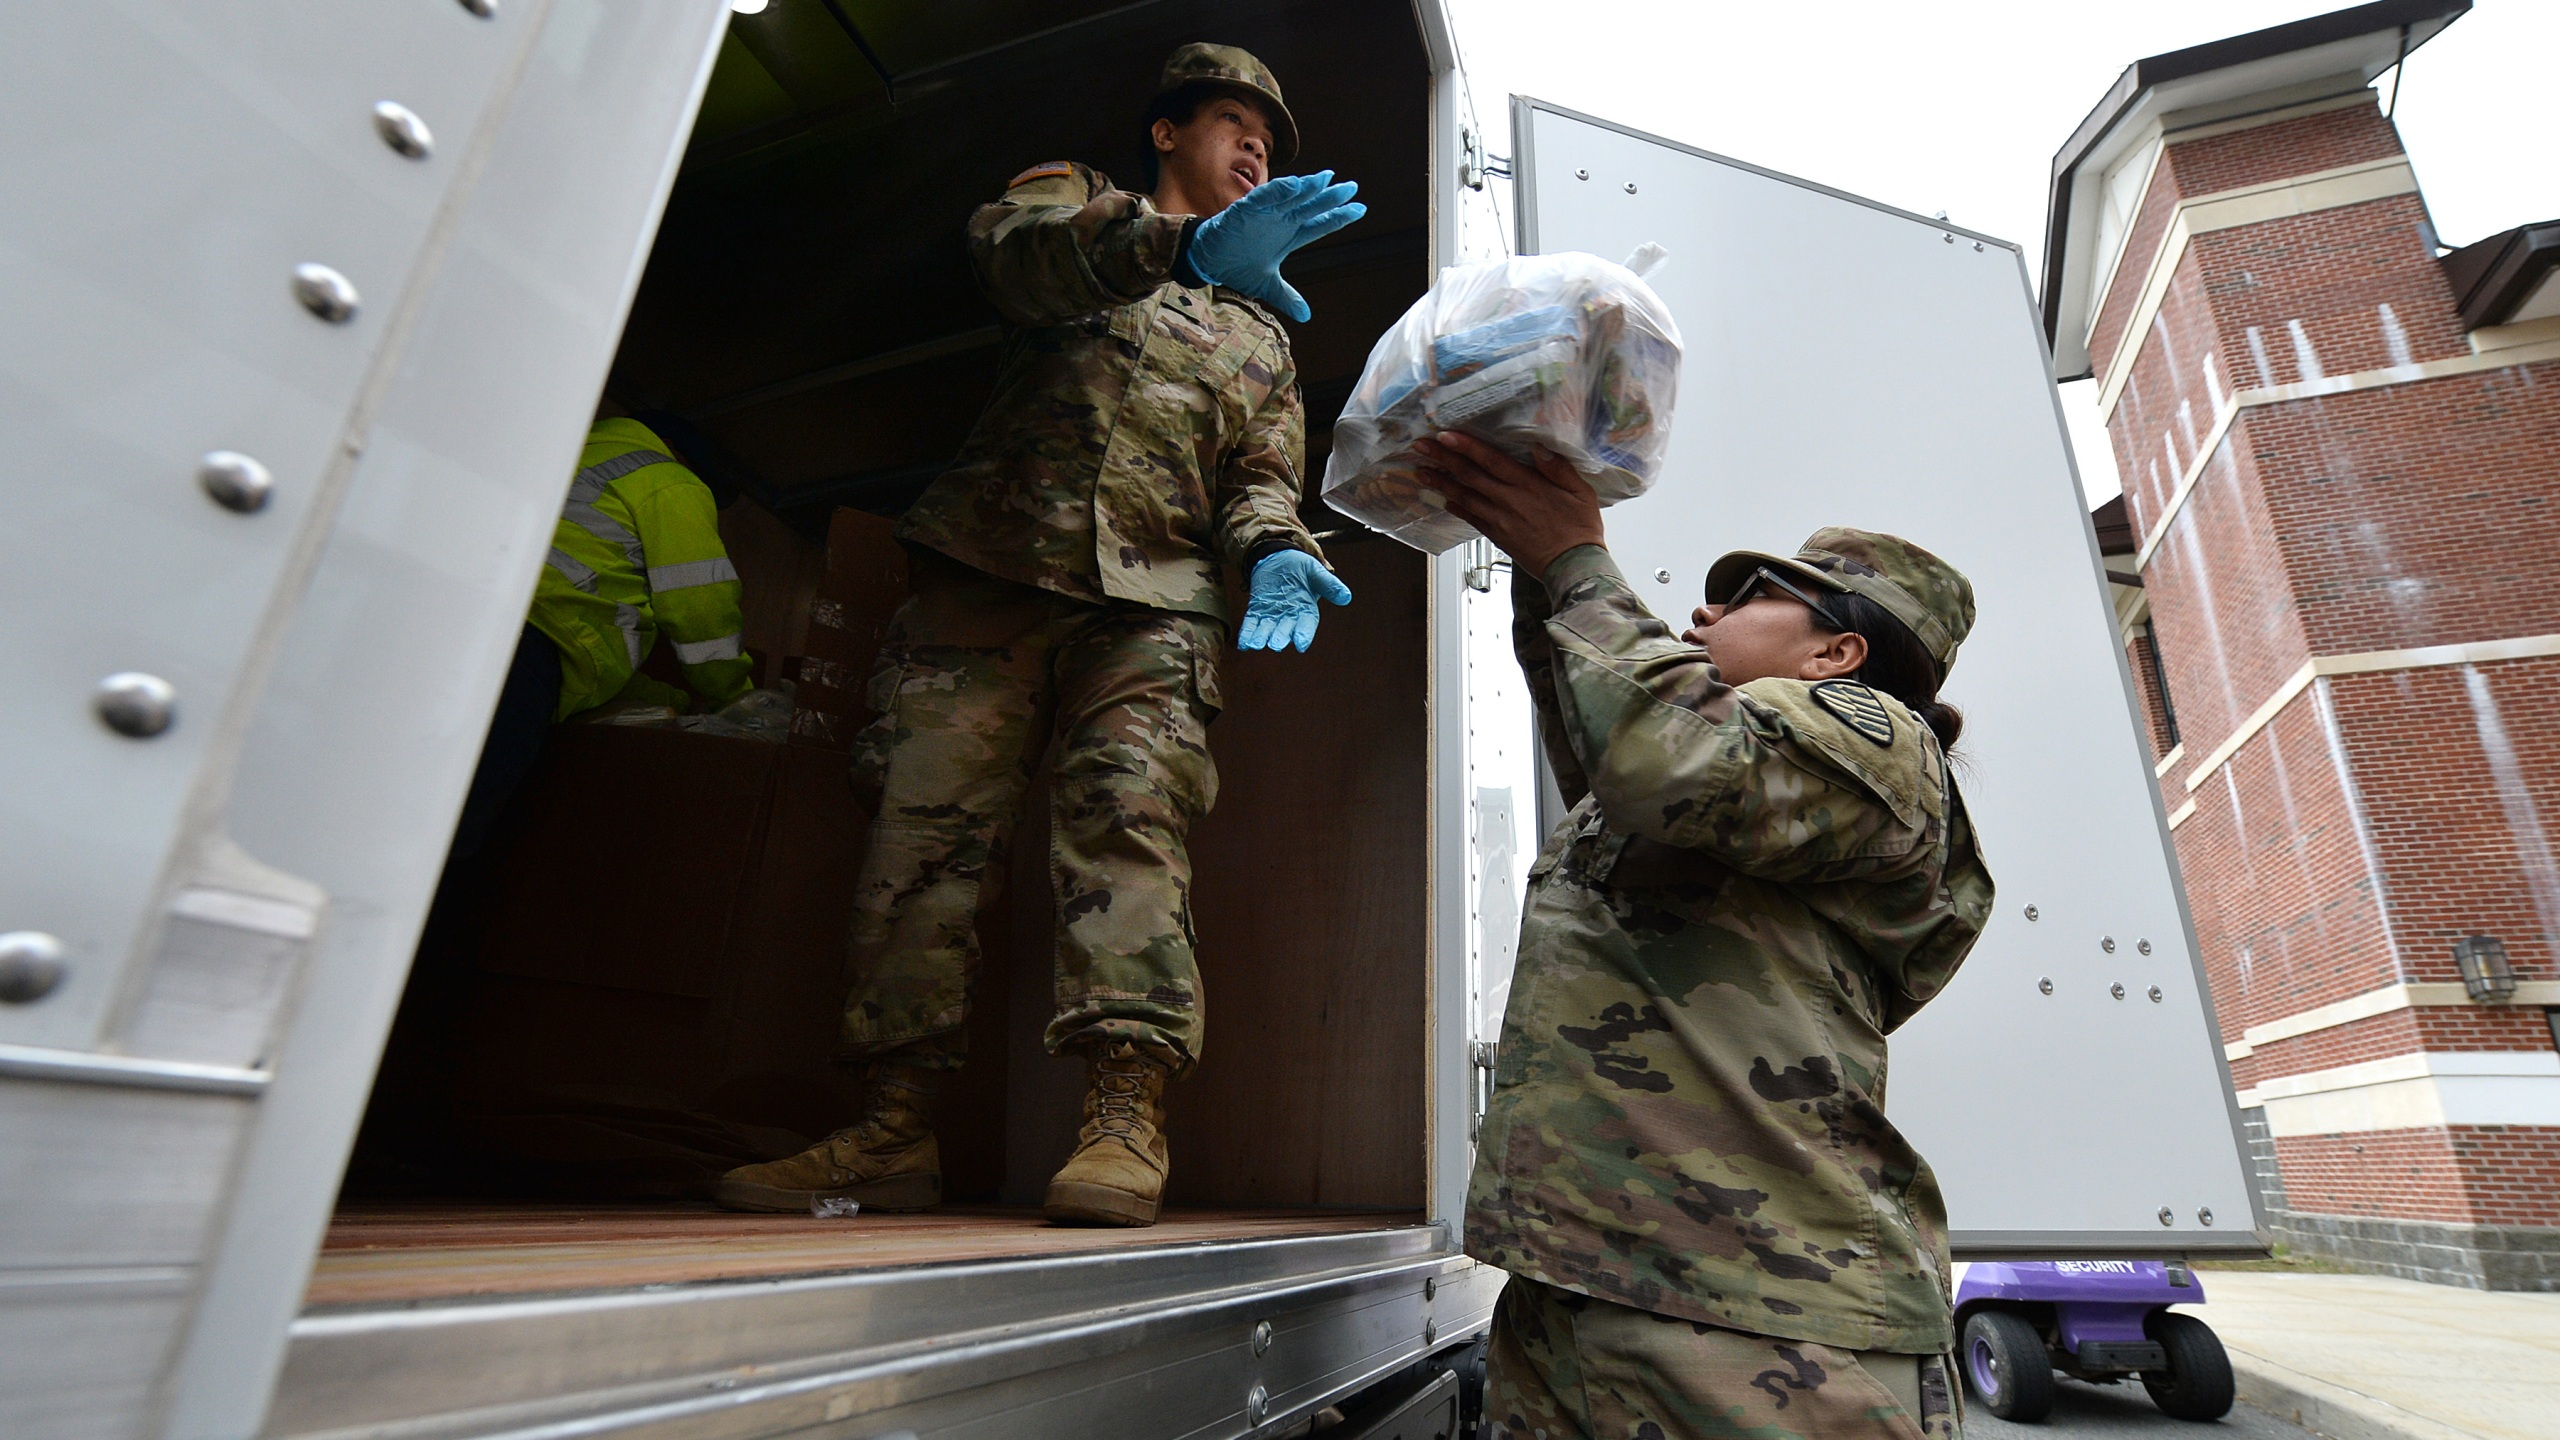 Army National Guard Specialists Arline (l) and Avila wear protective rubber gloves as they load bags of food for distribution from New Rochelle High School as part of New York State Gov. Andrew Cuomo deplyoment of the National Guard in the Westchester County town of New Rochelle in the coronavirus containment zone, New Rochelle, NY, March 12, 2020. (Anthony Behar/Sipa USA).